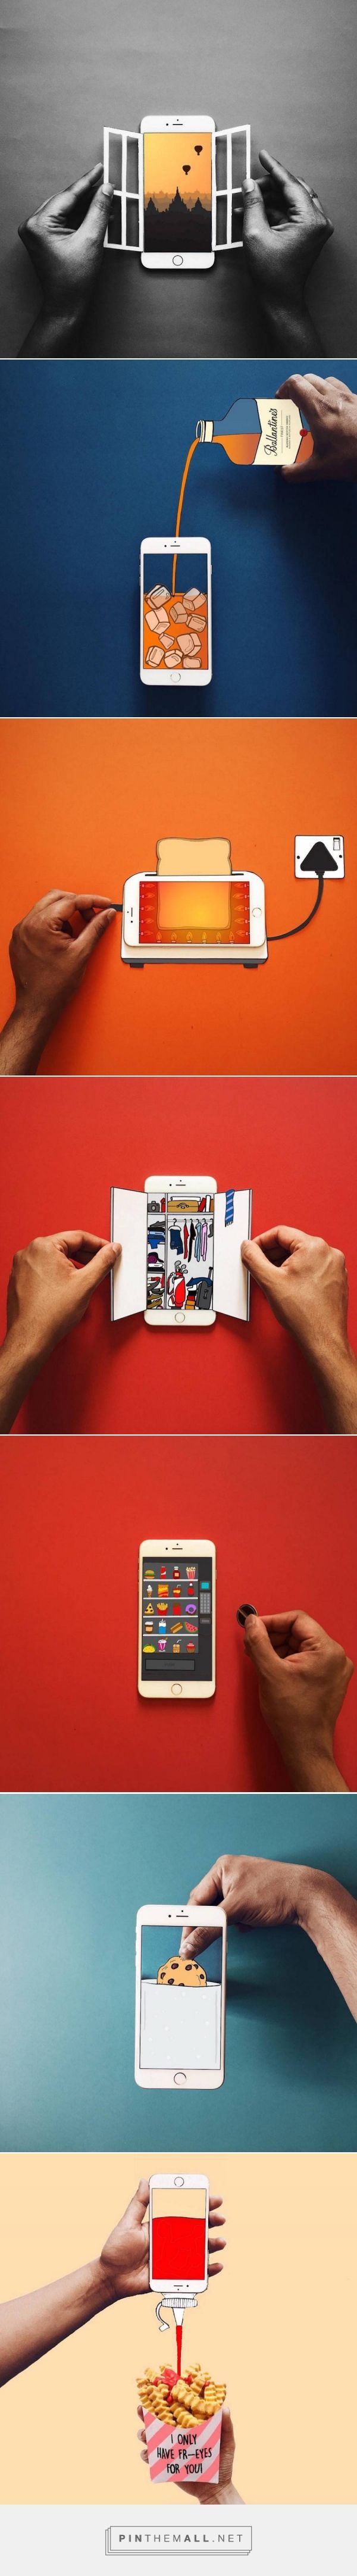 Creative Compositions Using An Iphone And Paper Creative Posters Book Design Poster Design